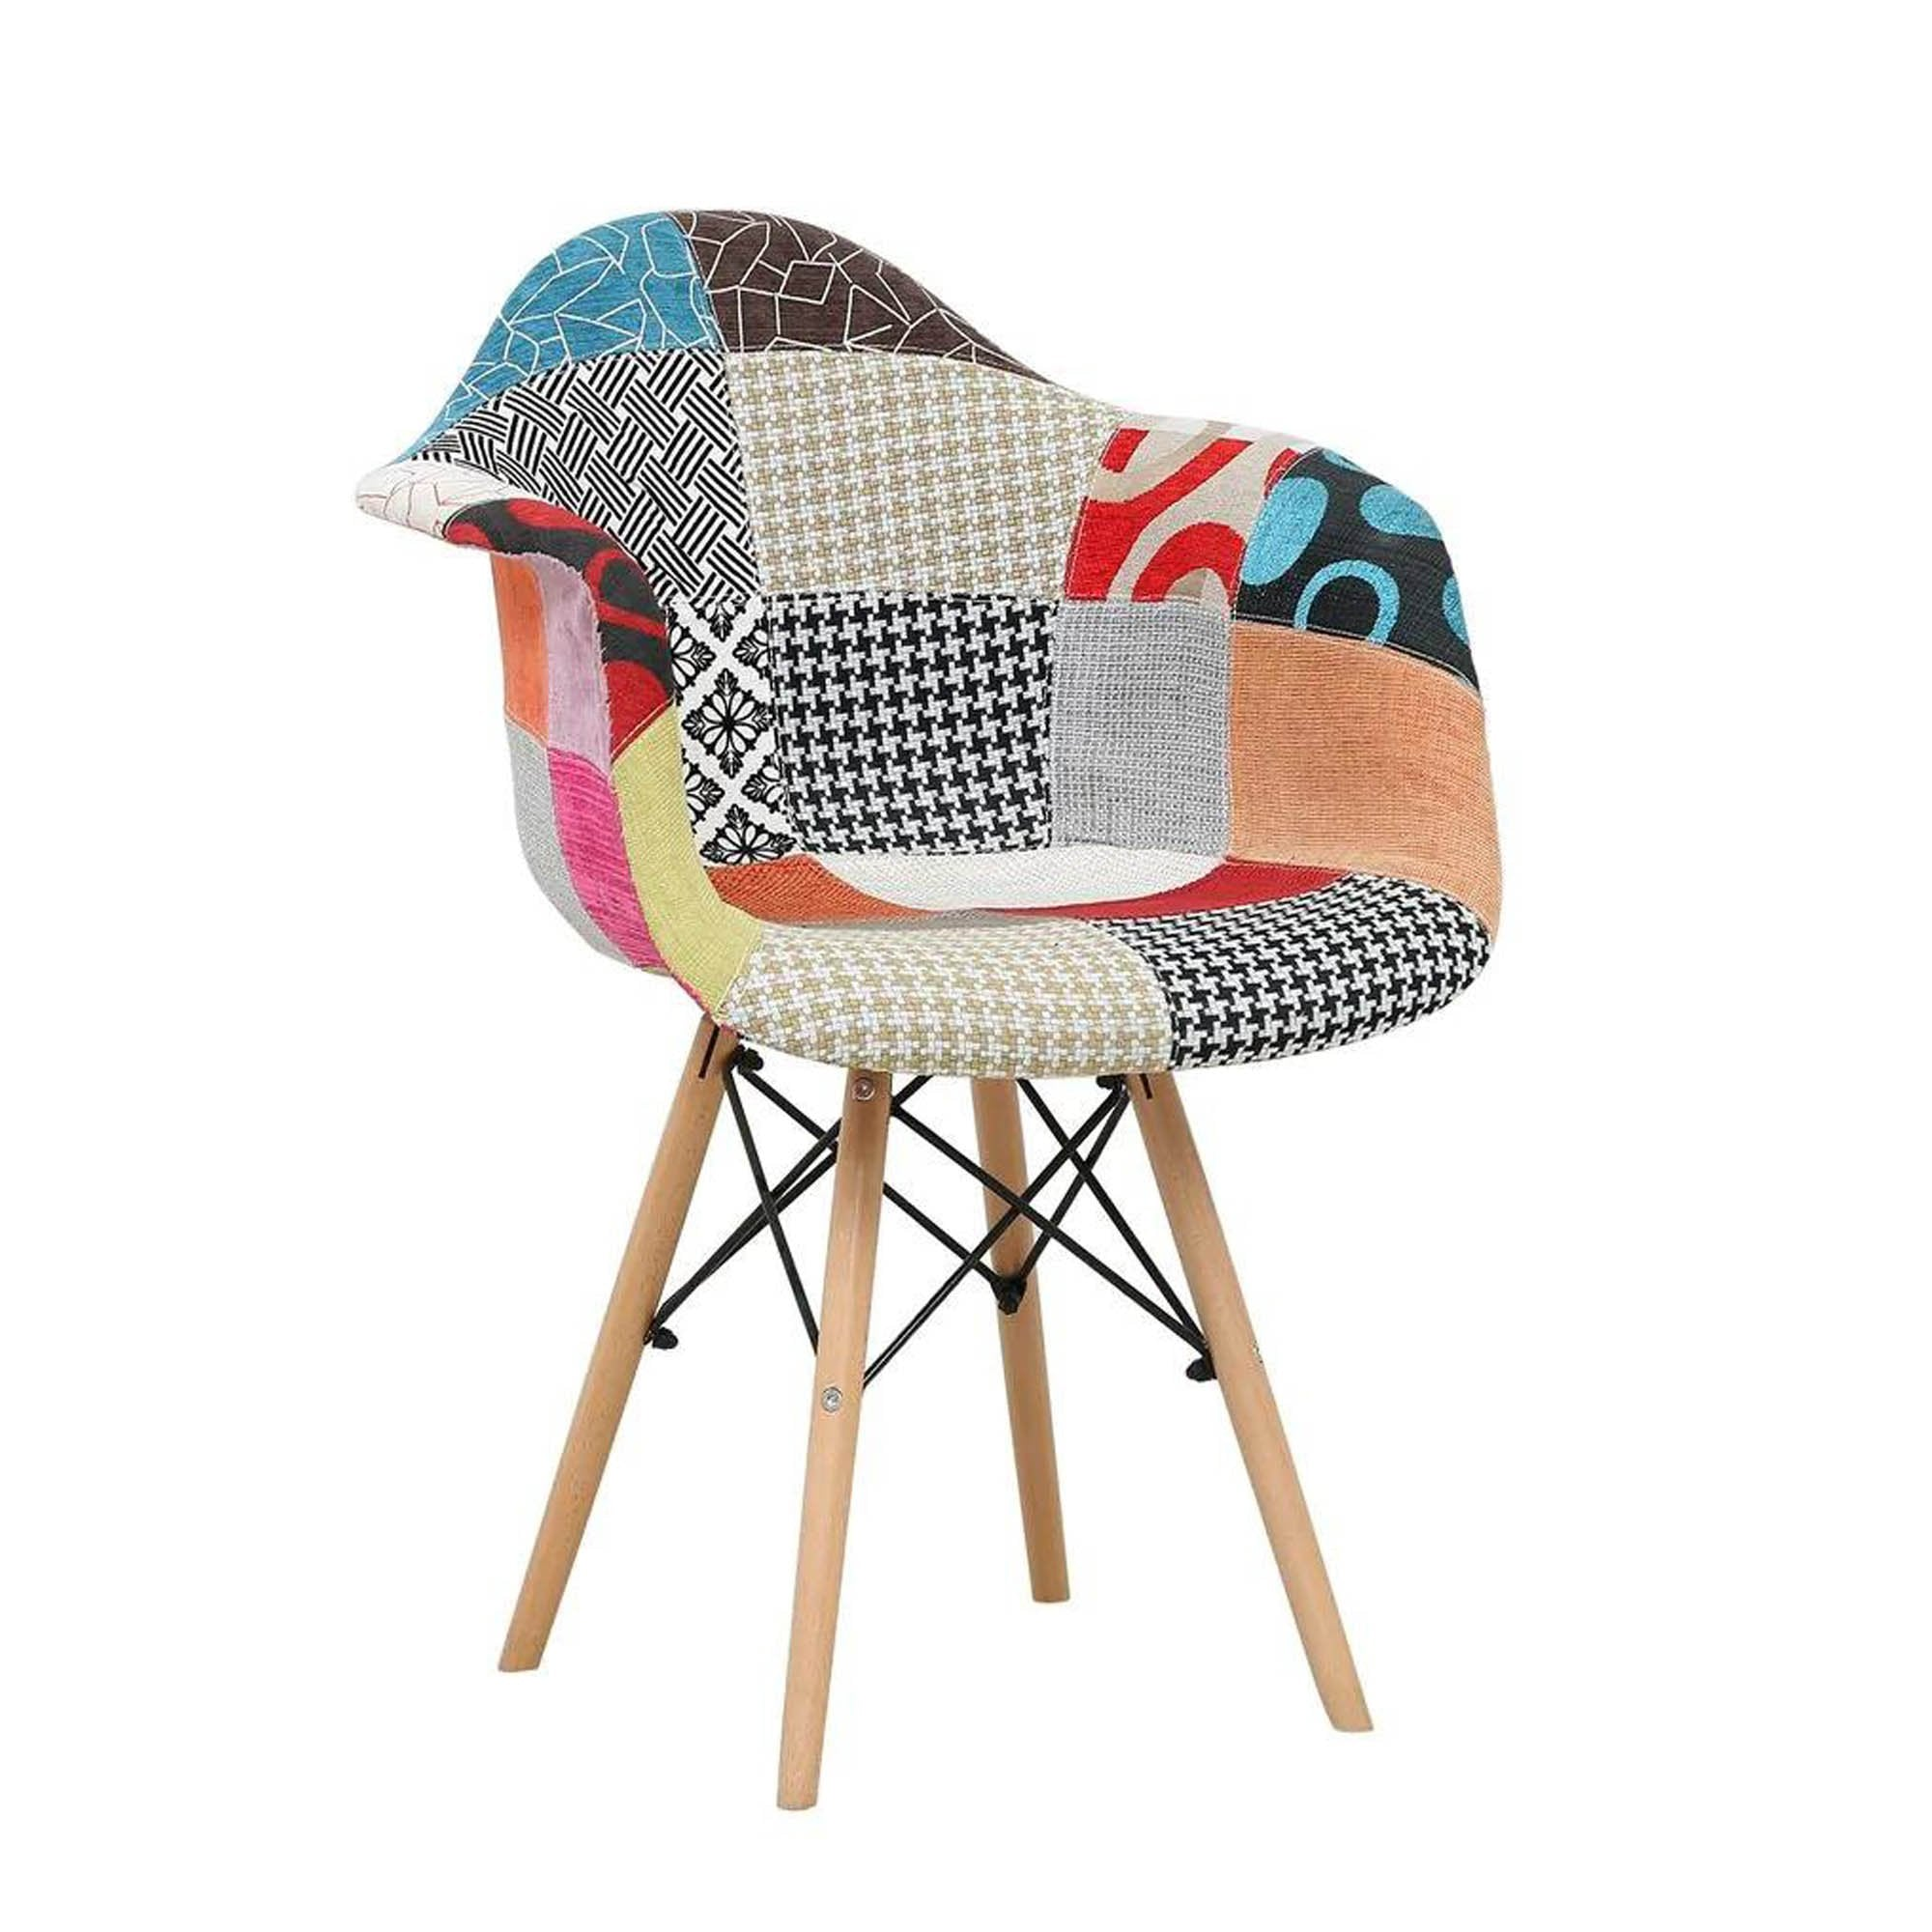 Multi-Colored Patch-work Chair